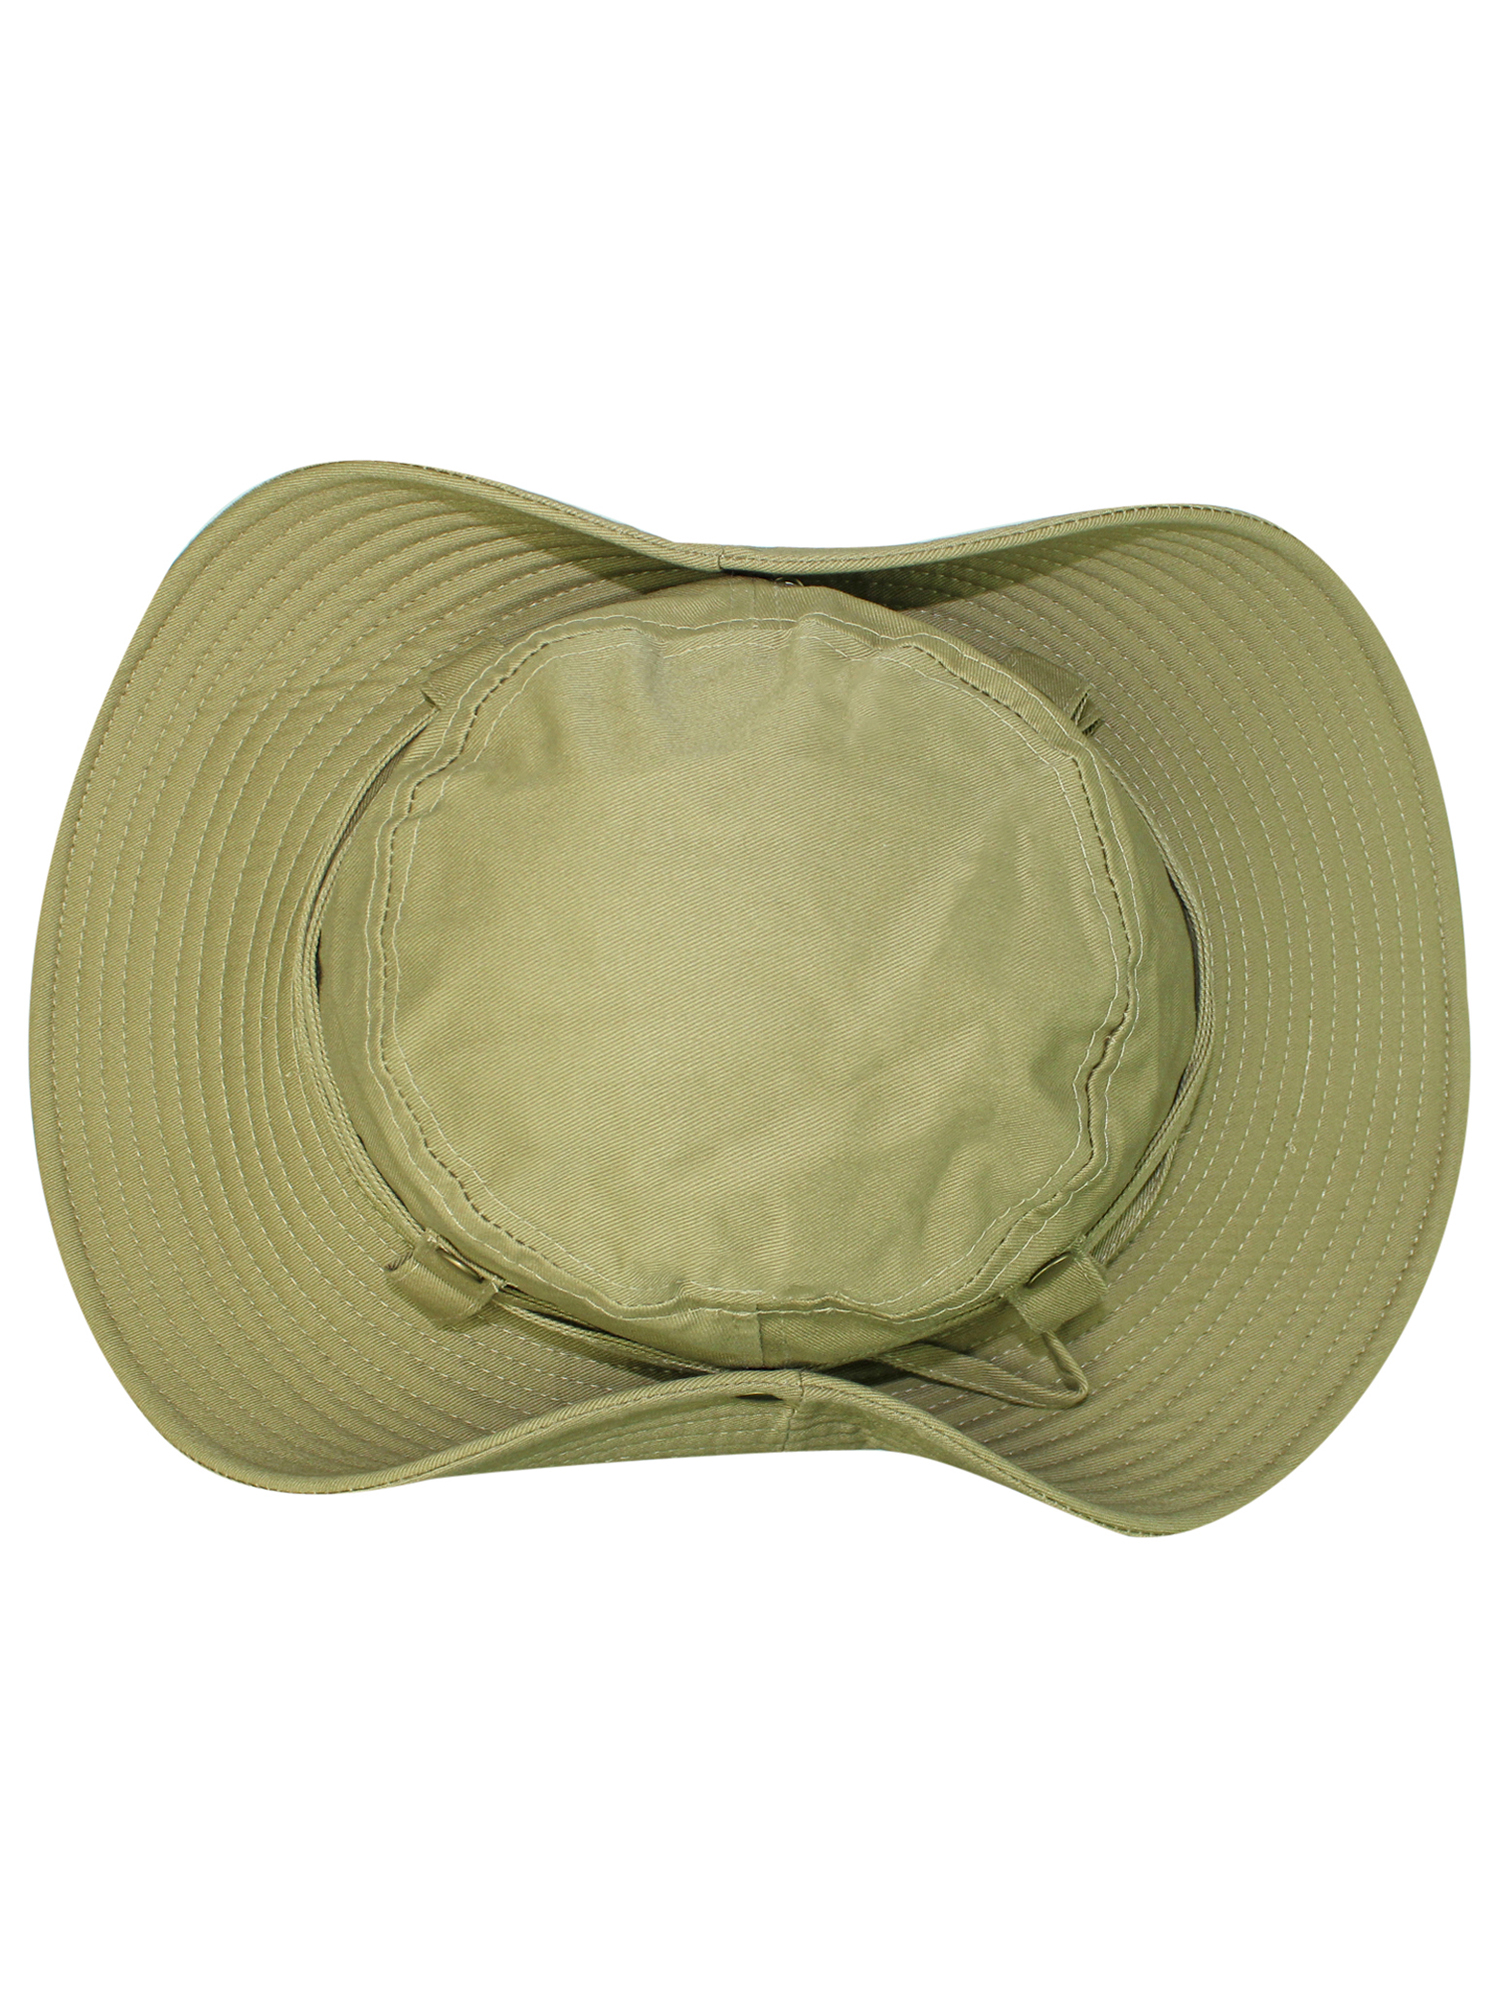 fef54254e Details about SAFARI STYLE COTTON HAT WITH CHIN CORD & SIDE SNAPS